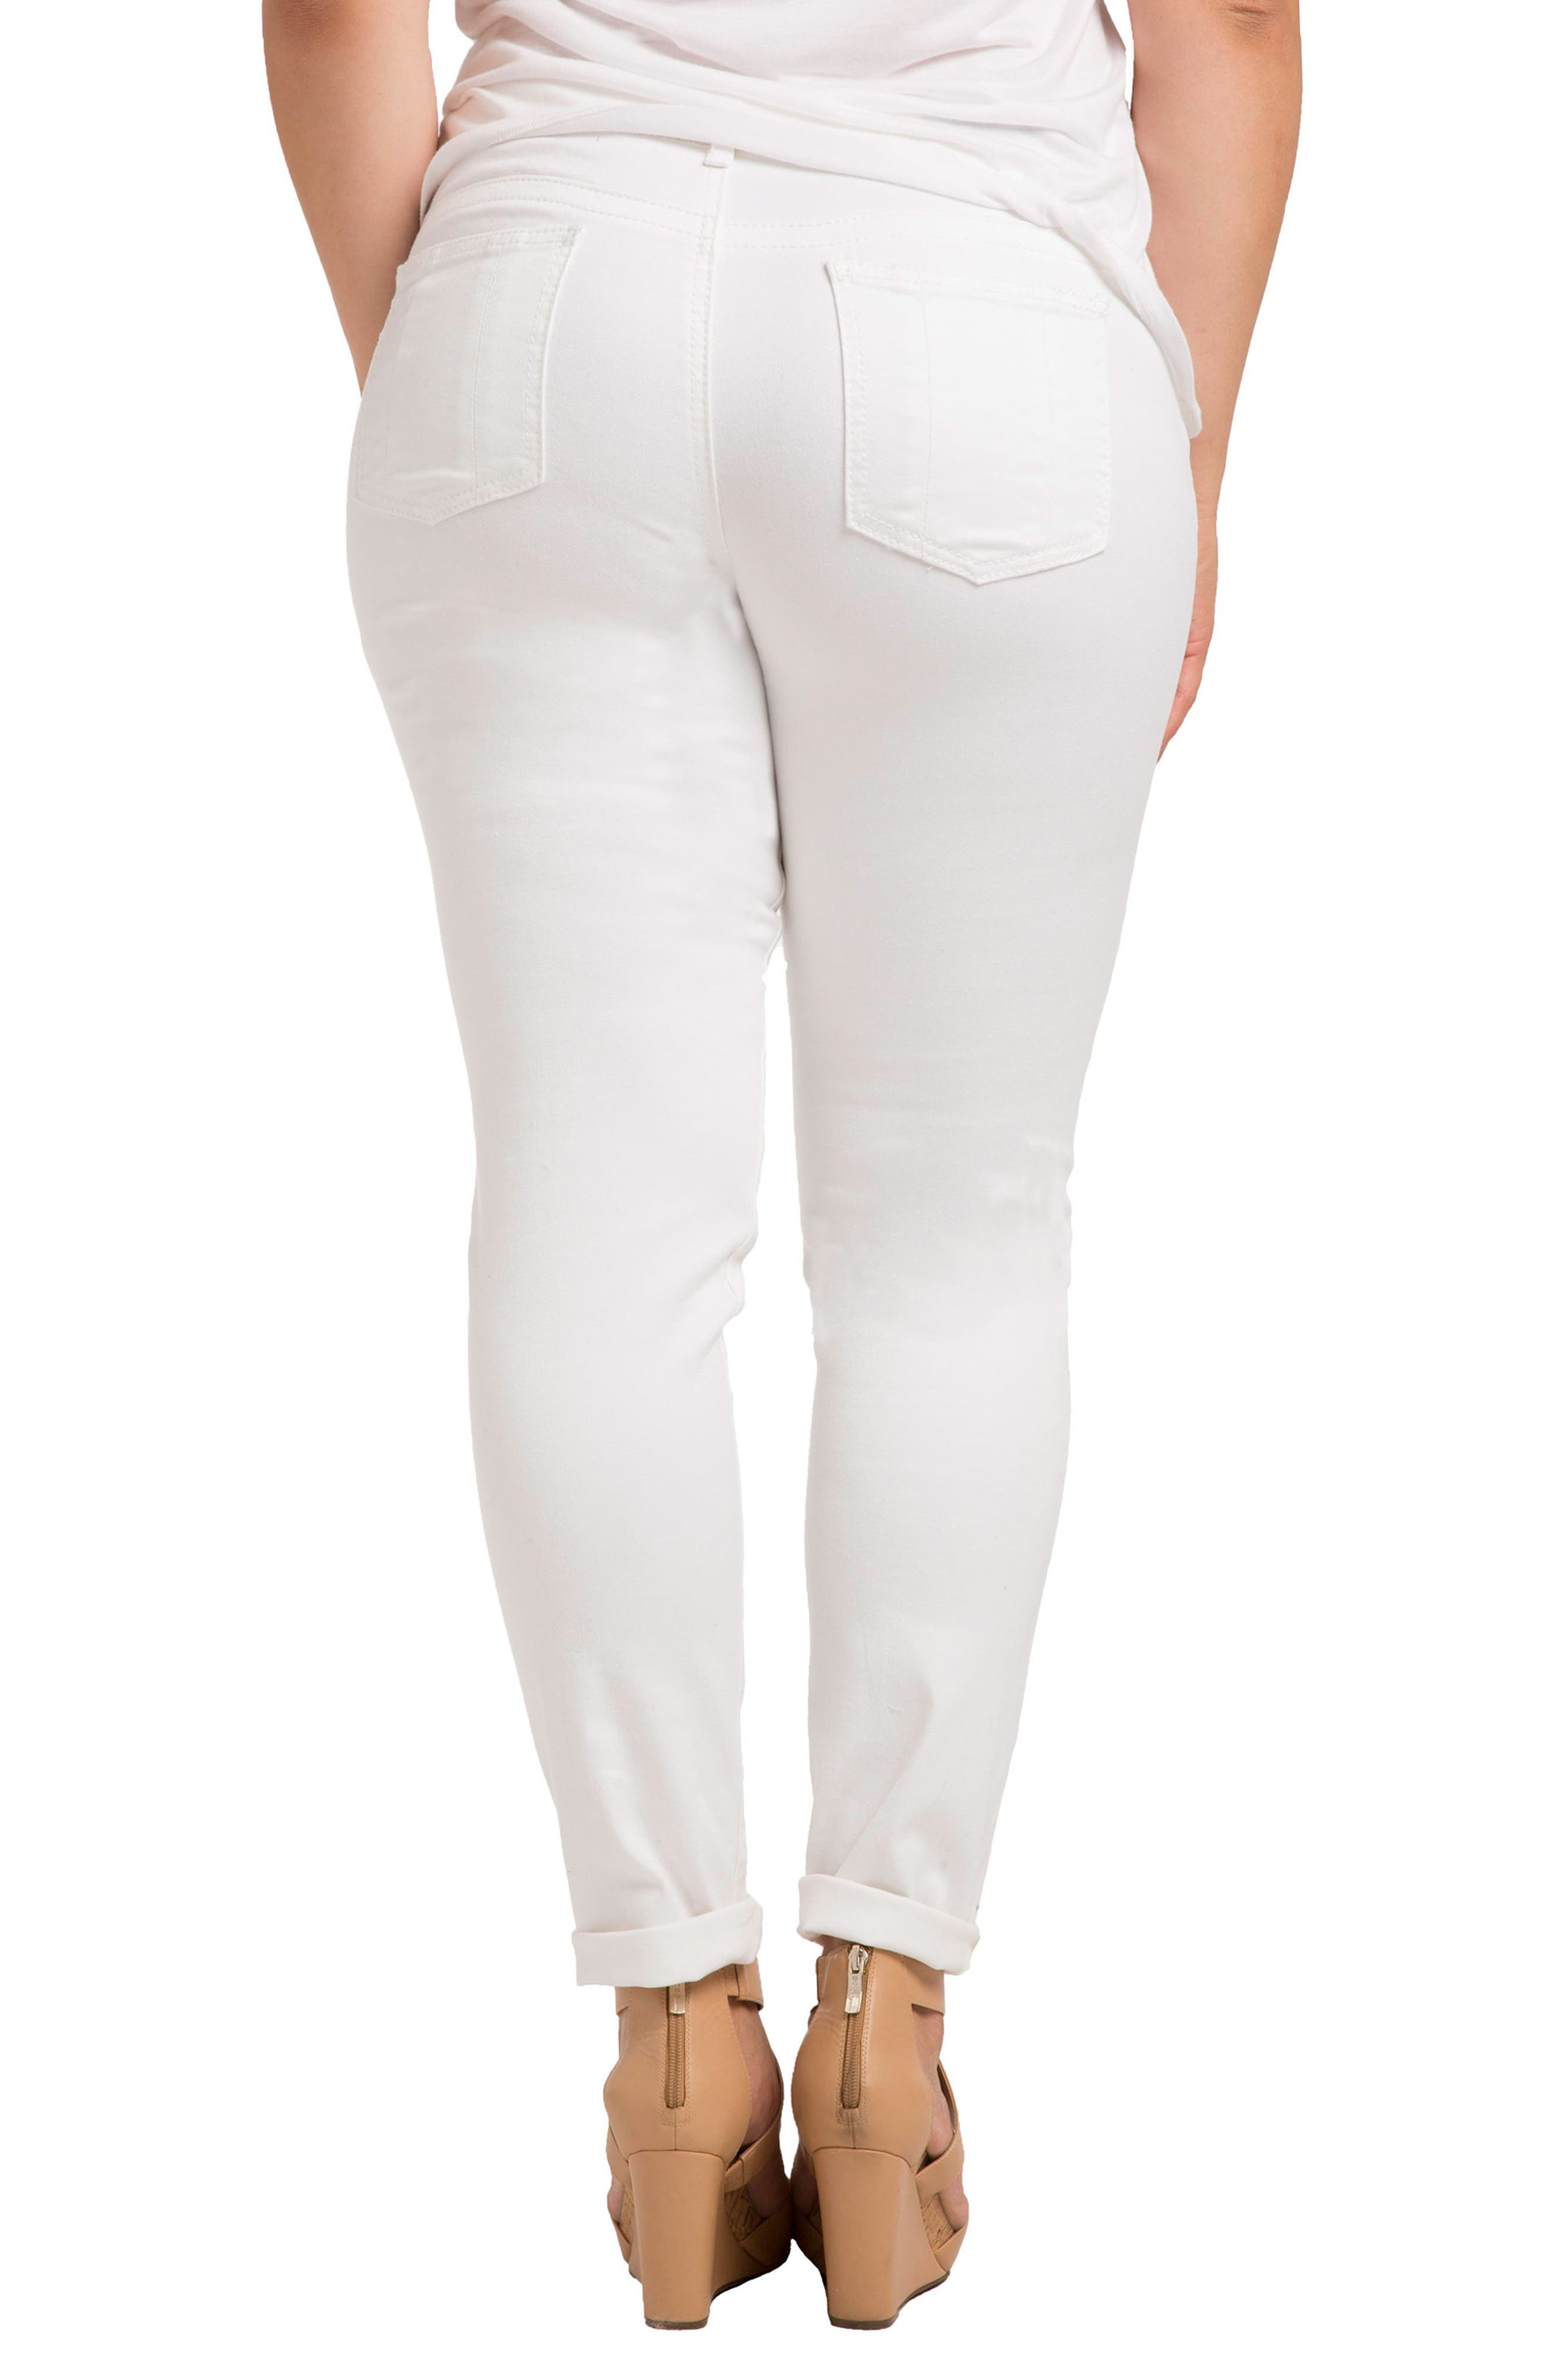 STANDARDS & PRACTICES, Destroyed Stretch Skinny Boyfriend Jeans, Alternate thumbnail 2, color, WHITE